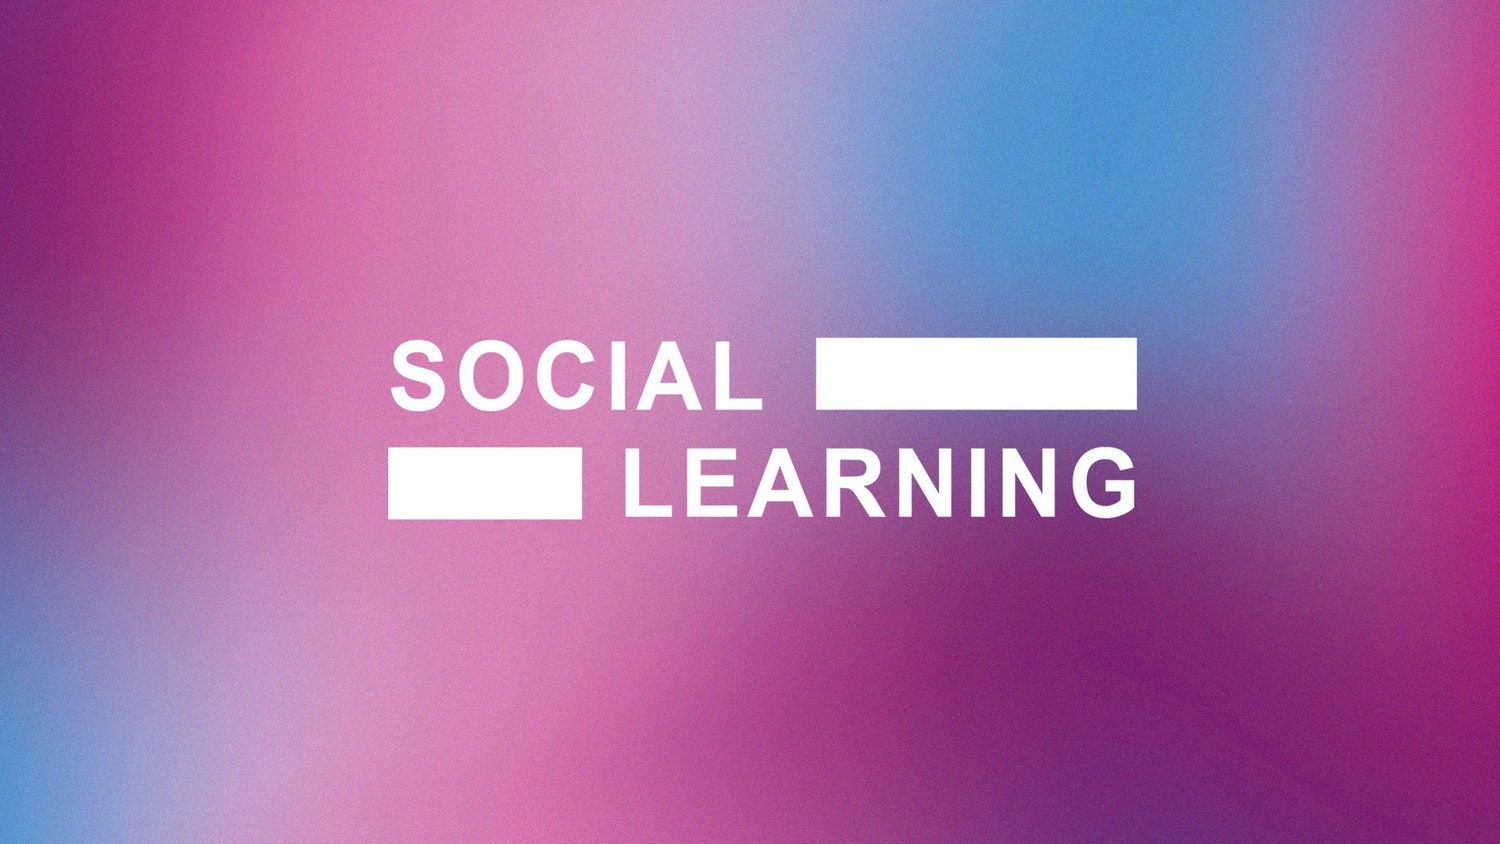 Social learning large desktop